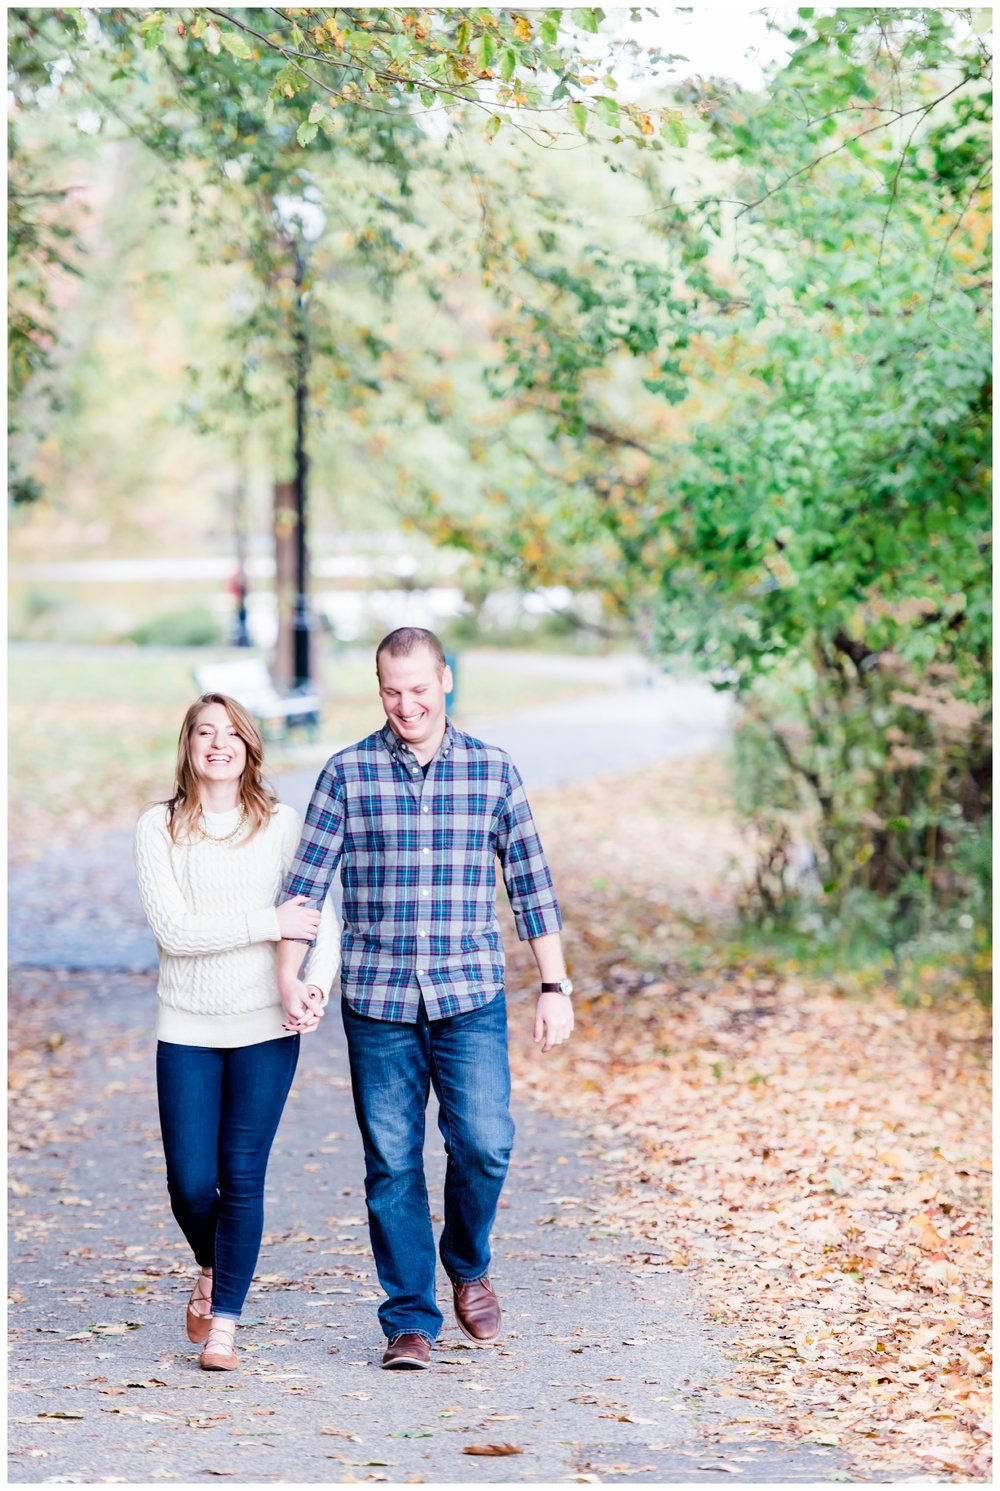 Adorable couple at their engagement session at Verona Park, Verona New Jersey